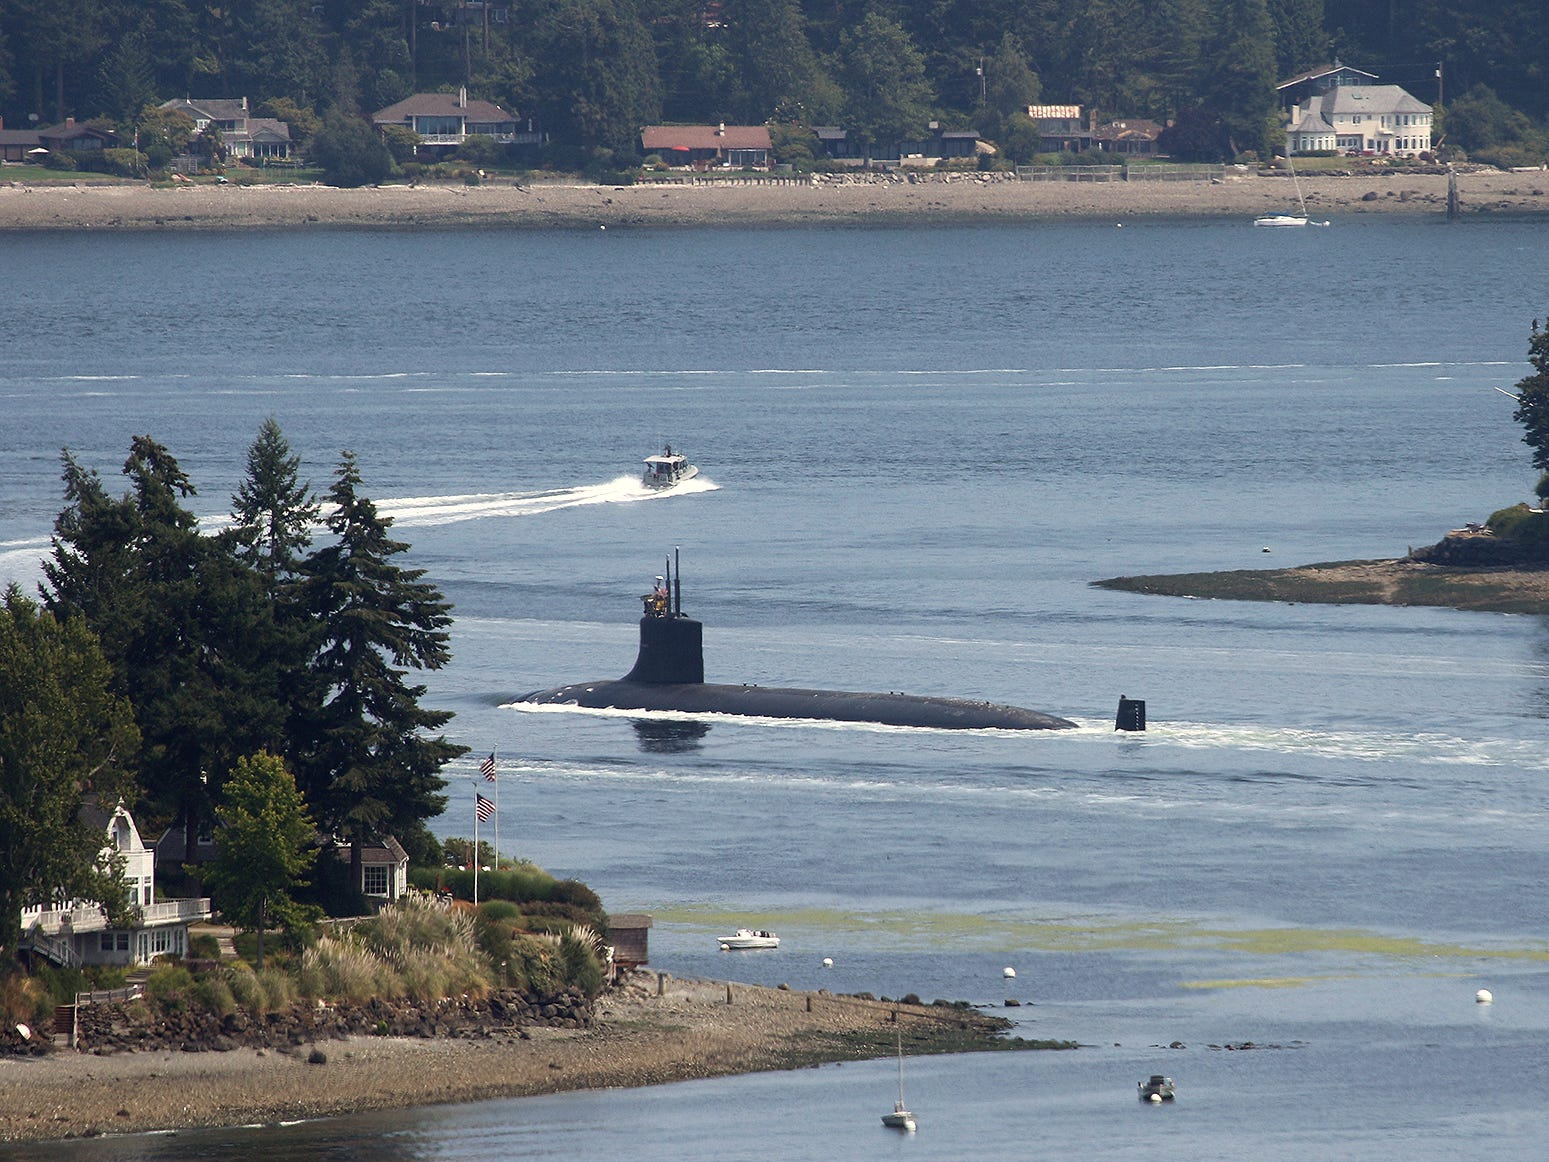 A submarine goes through Rich Passage between Bainbridge Island and Port Orchard on Tuesday afternoon after it leaves Bremerton.